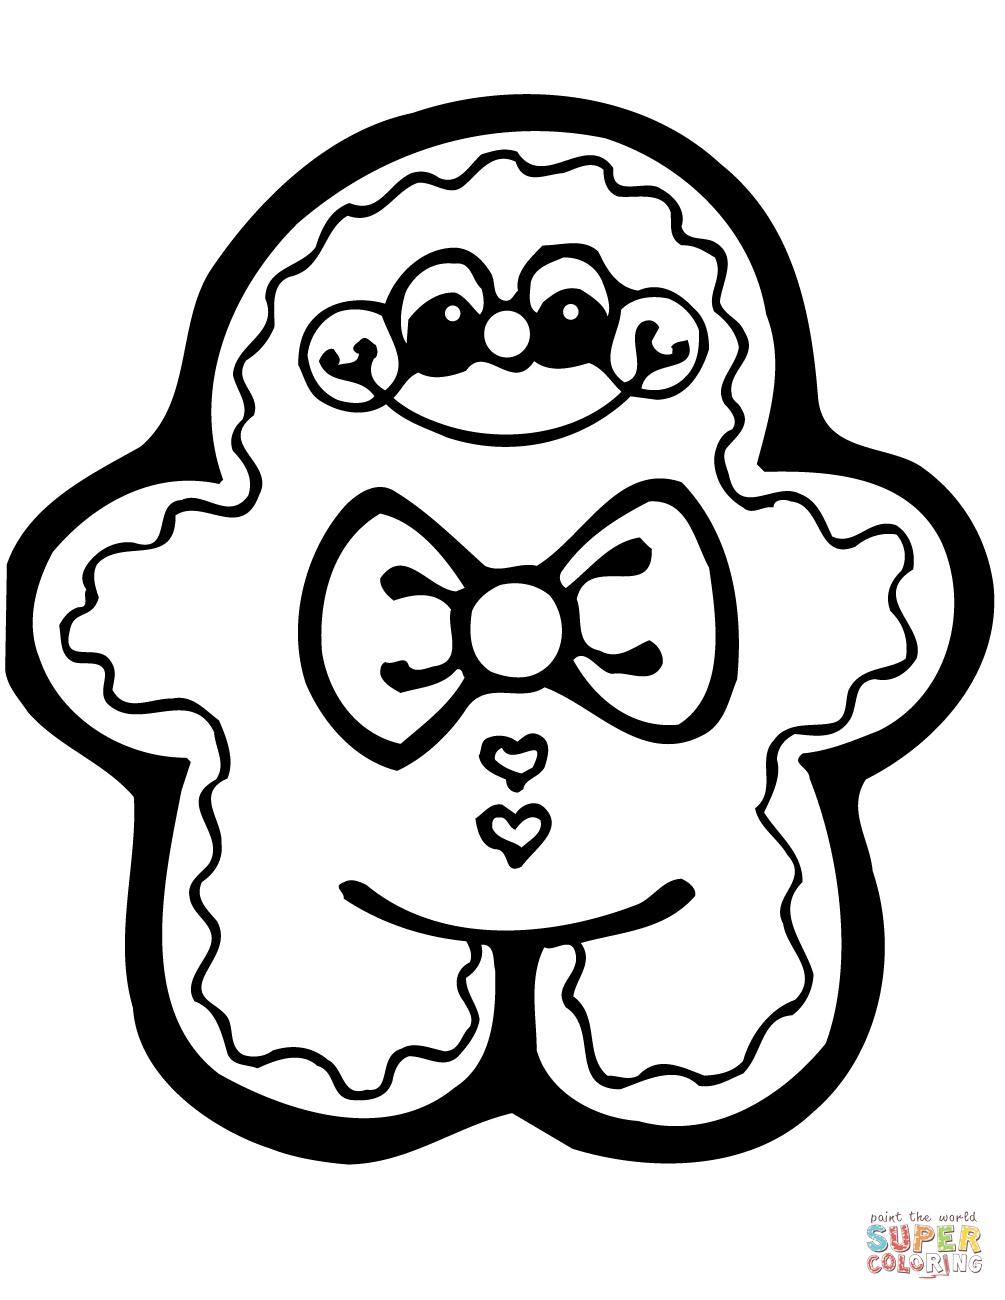 Gingerbread Coloring Pages Gingerbread Coloring Pages Free Download Best Gingerbread Coloring